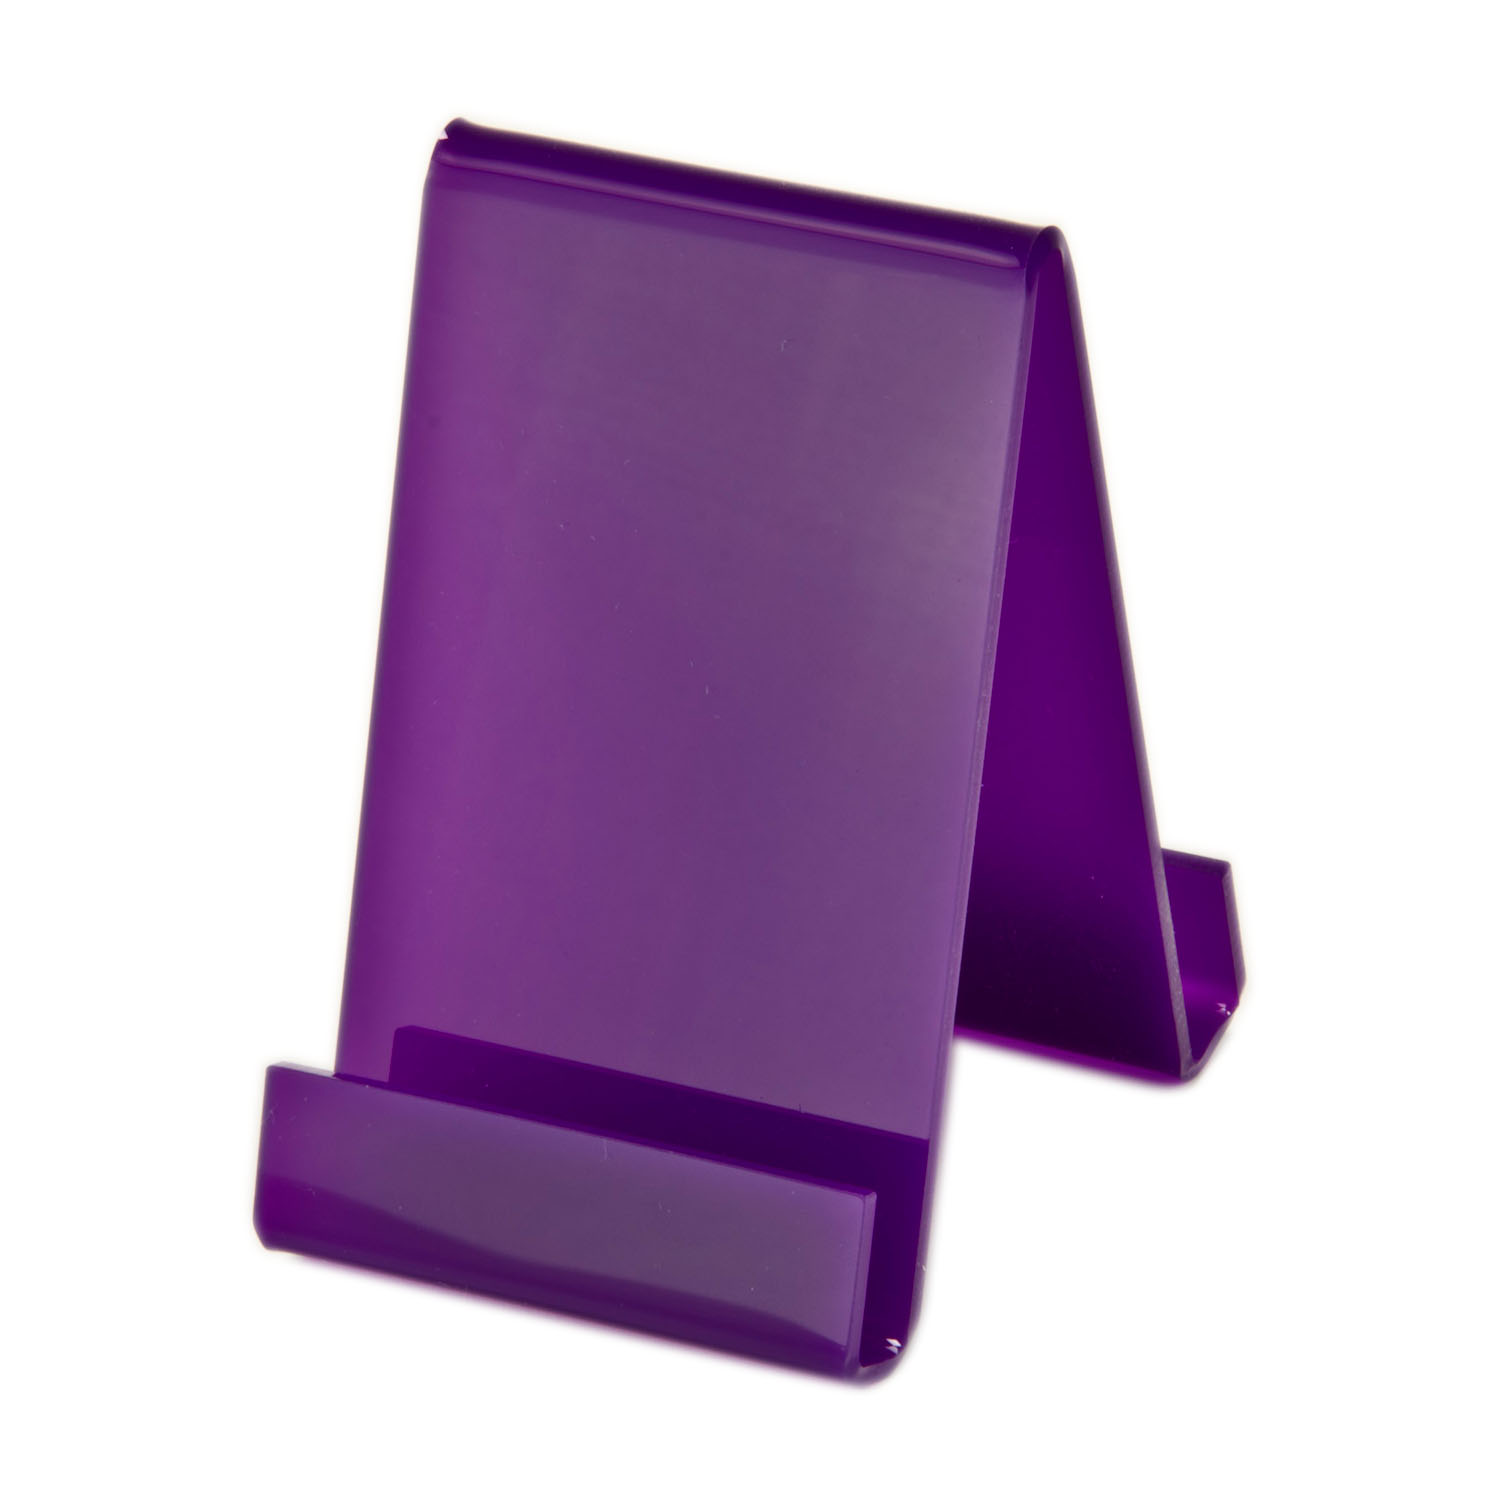 Box Picture Frames